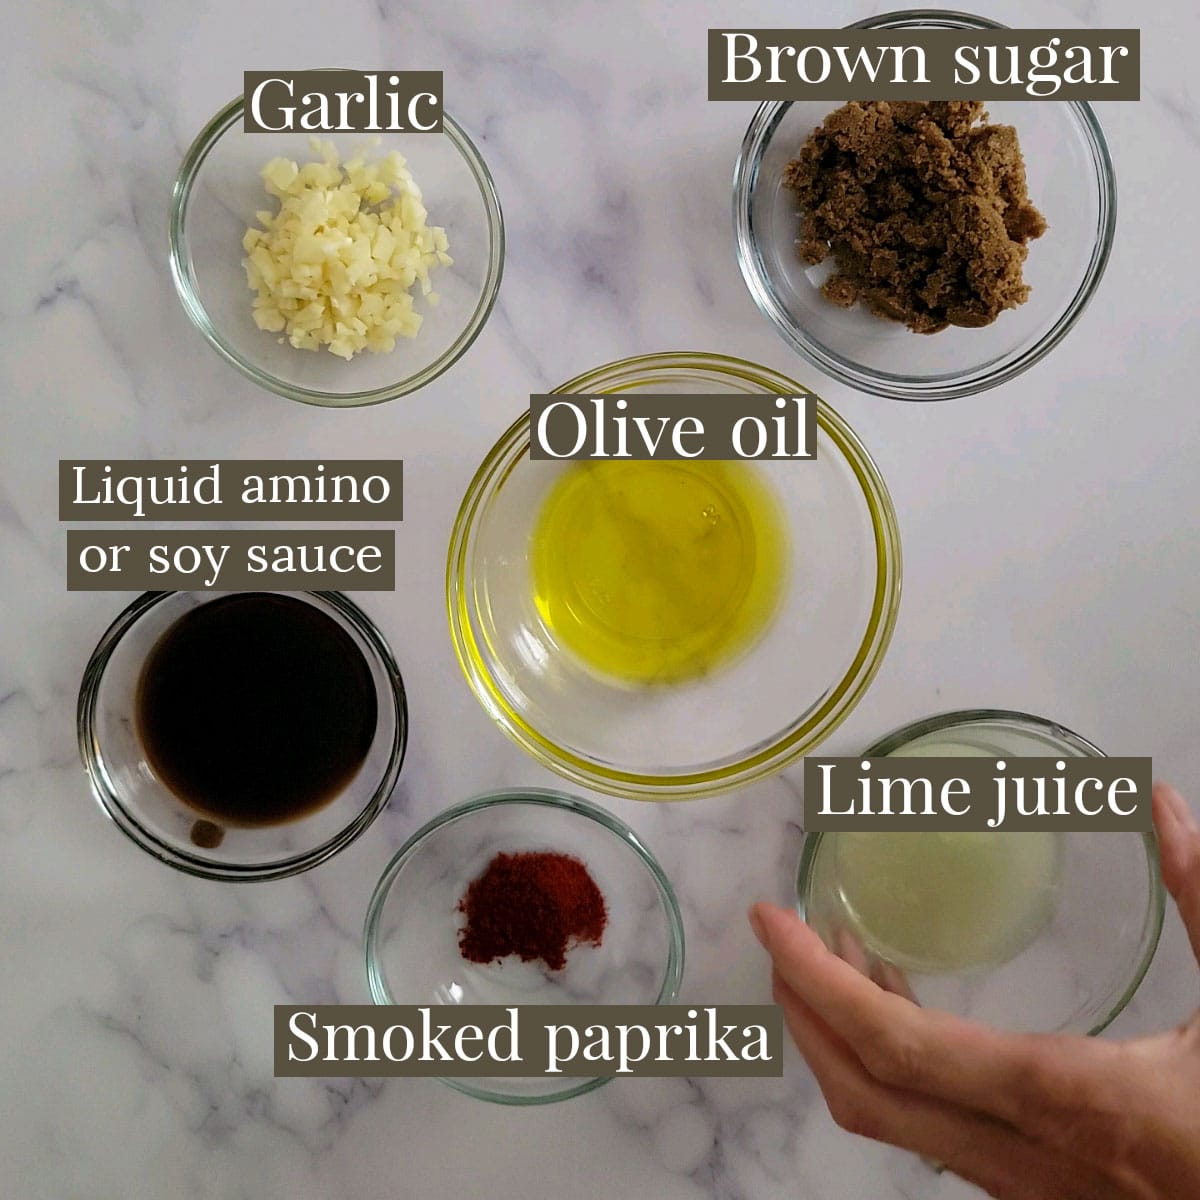 Ingredients for marinade in small prep bowls - garlic, brown sugar, liquid amino, olive oil, smoked paprika and lime juice